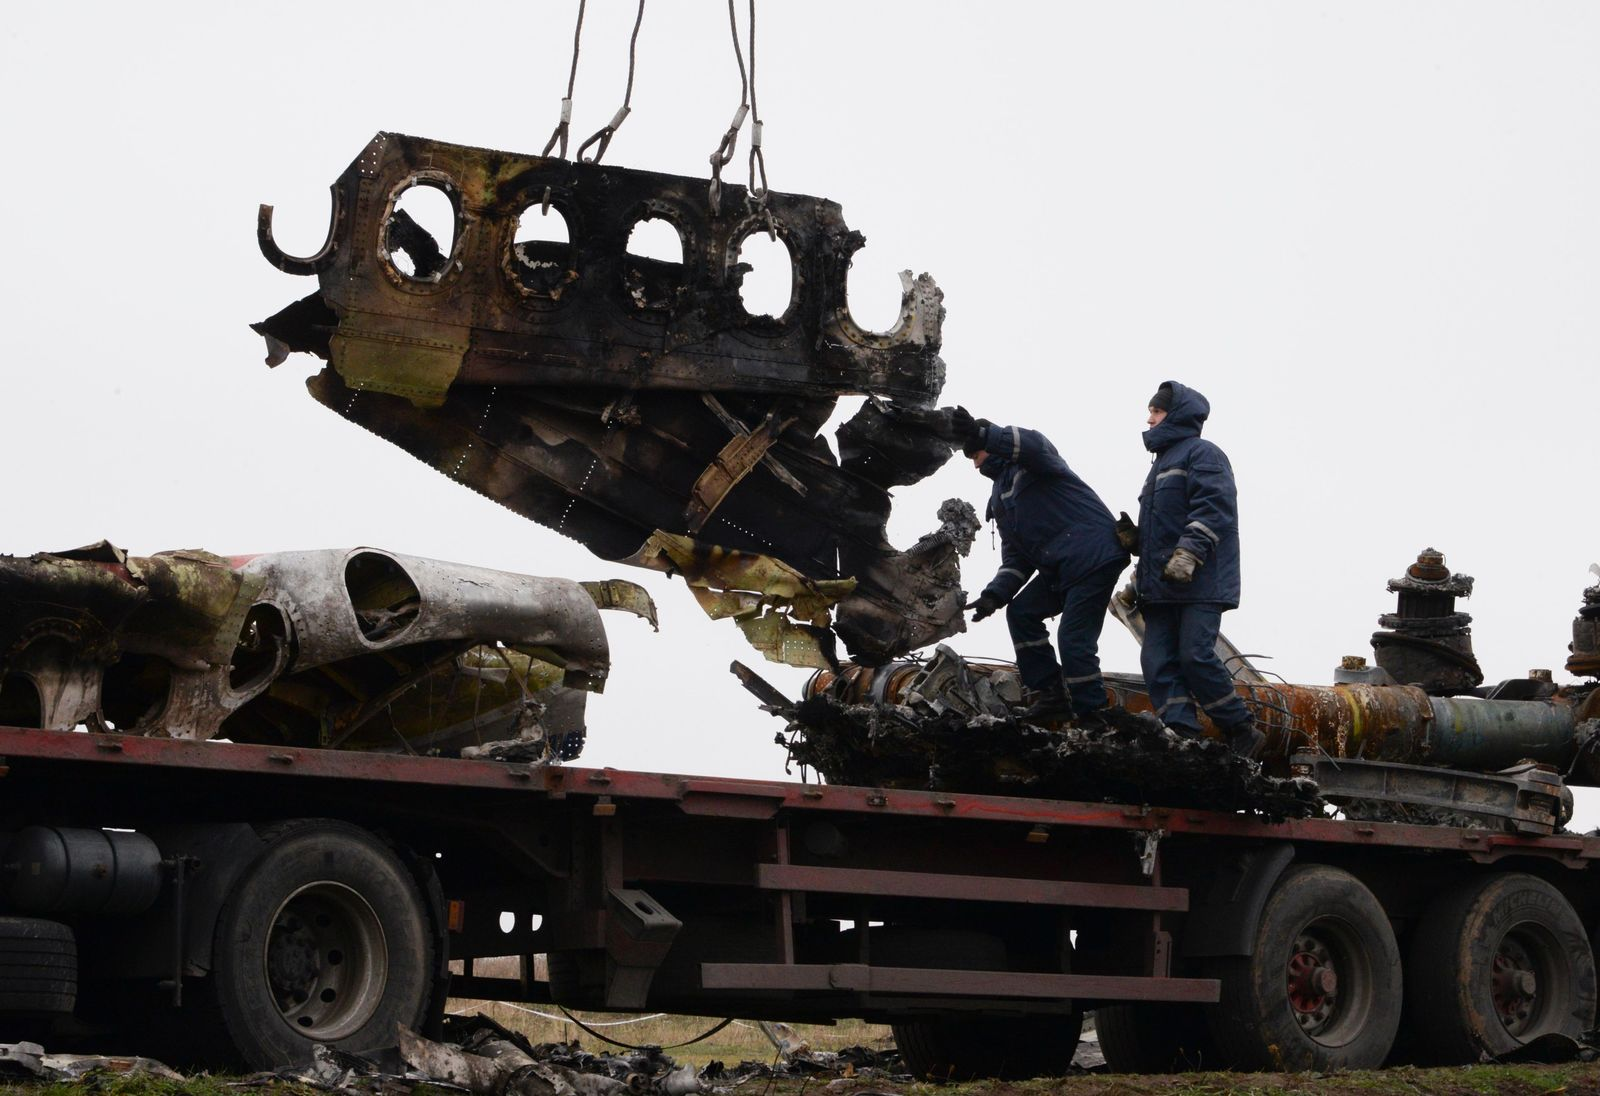 FILE - In this file photo dated Sunday, Nov. 16, 2014, recovery workers in rebel-controlled eastern Ukraine load debris from the crash site of Malaysia Airlines Flight 17, in Hrabove, Ukraine, with recovery operations carried out under the supervision of Dutch investigators and officials from the Organization for Security and Cooperation in Europe.(AP Photo/Mstyslav Chernov, FILE)